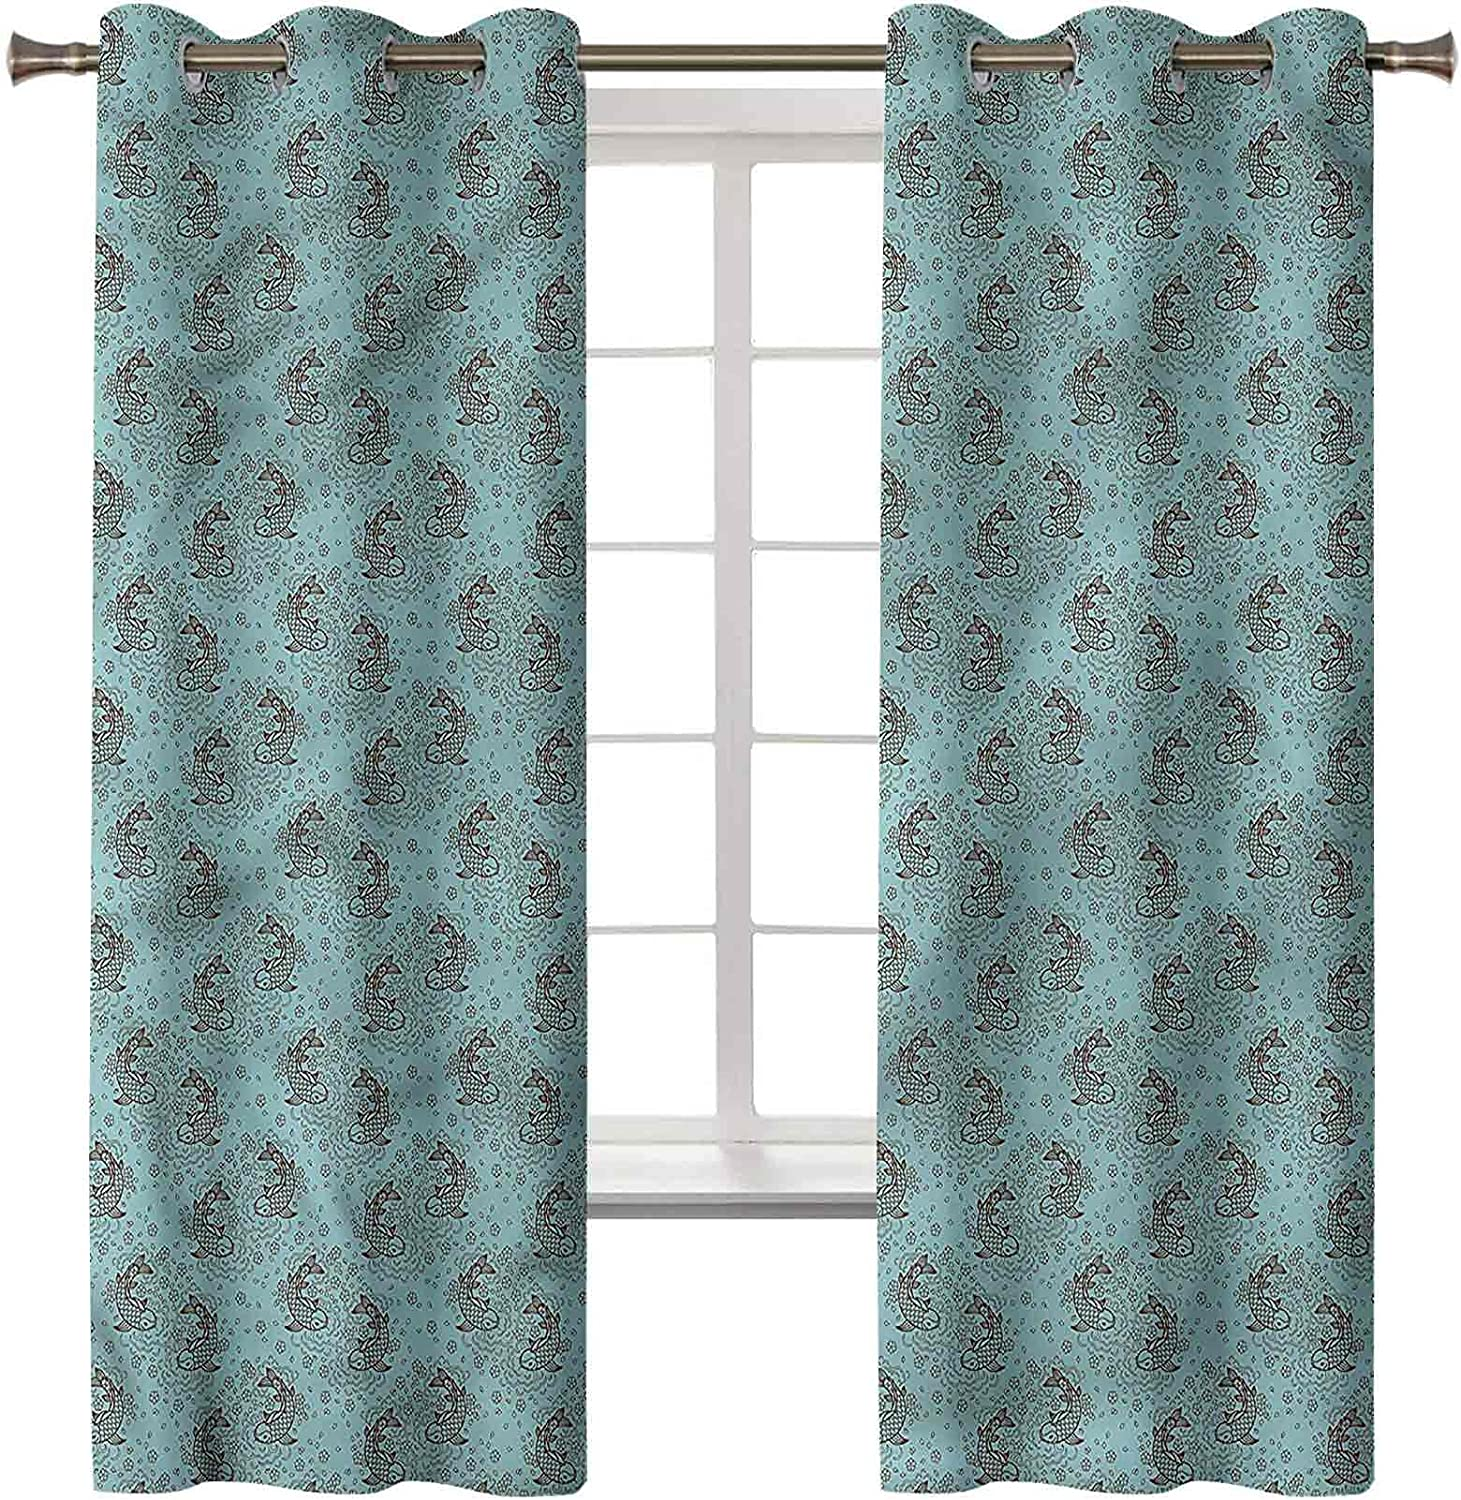 Blackout Curtains Thermal Insulated New life Home Brand new Drawn Hand Fish Decor